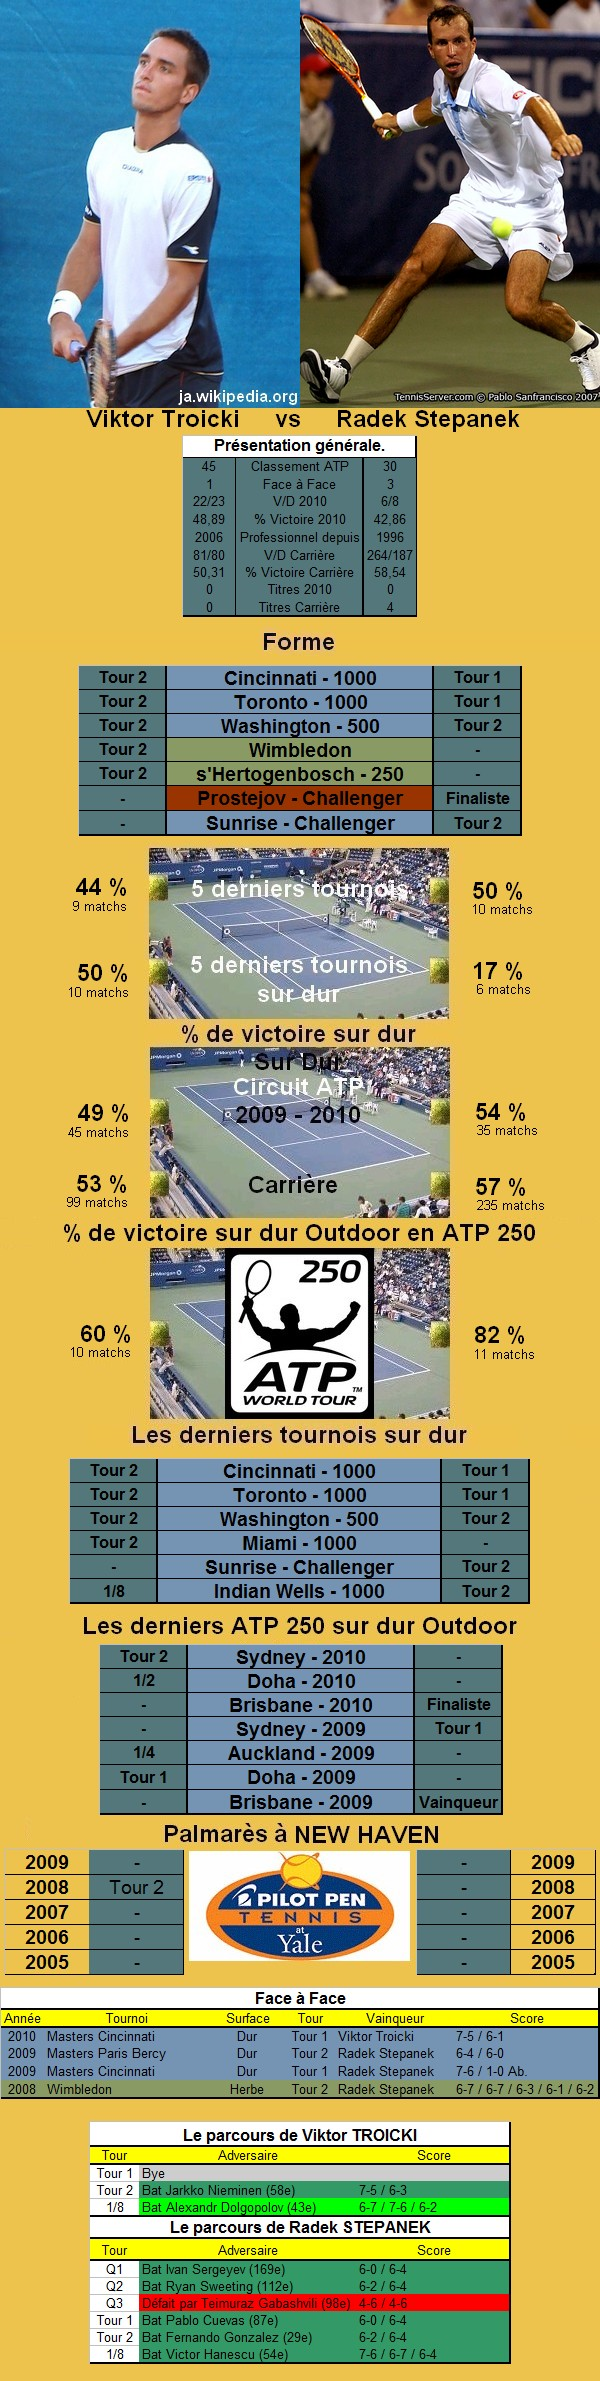 Statistiques tennis de Troicki contre Stepanek à New Haven